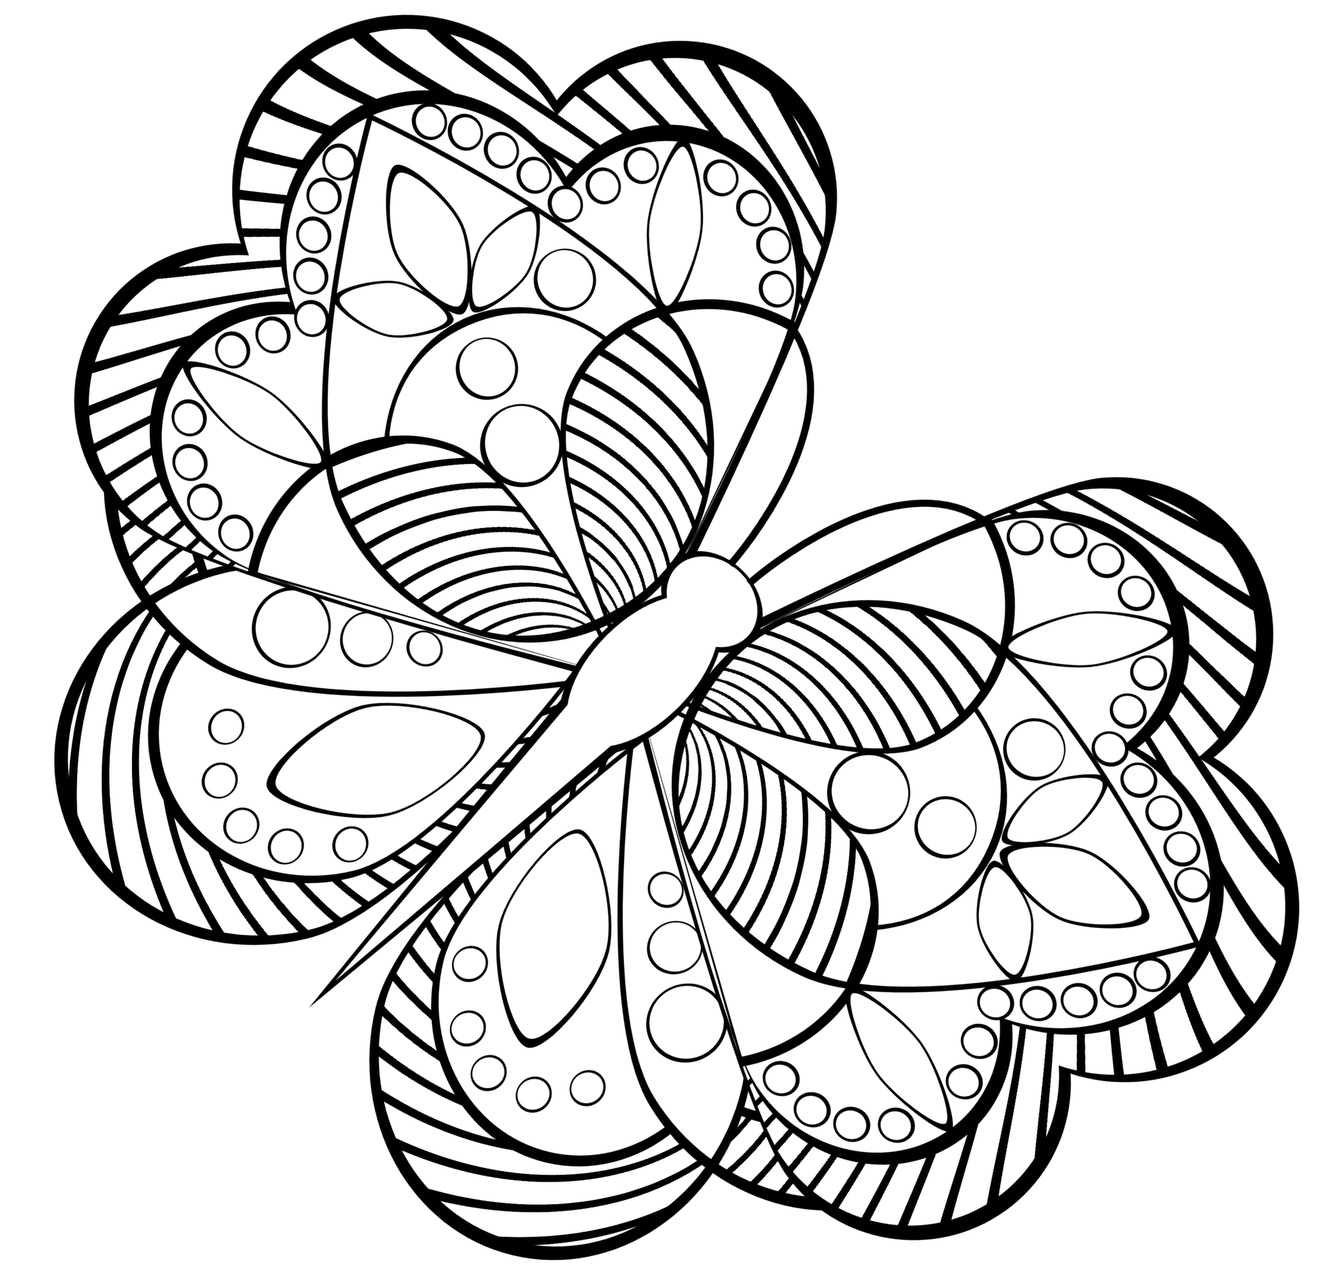 free printable advanced coloring pages high skill image 52 - Printable Advanced Coloring Pages